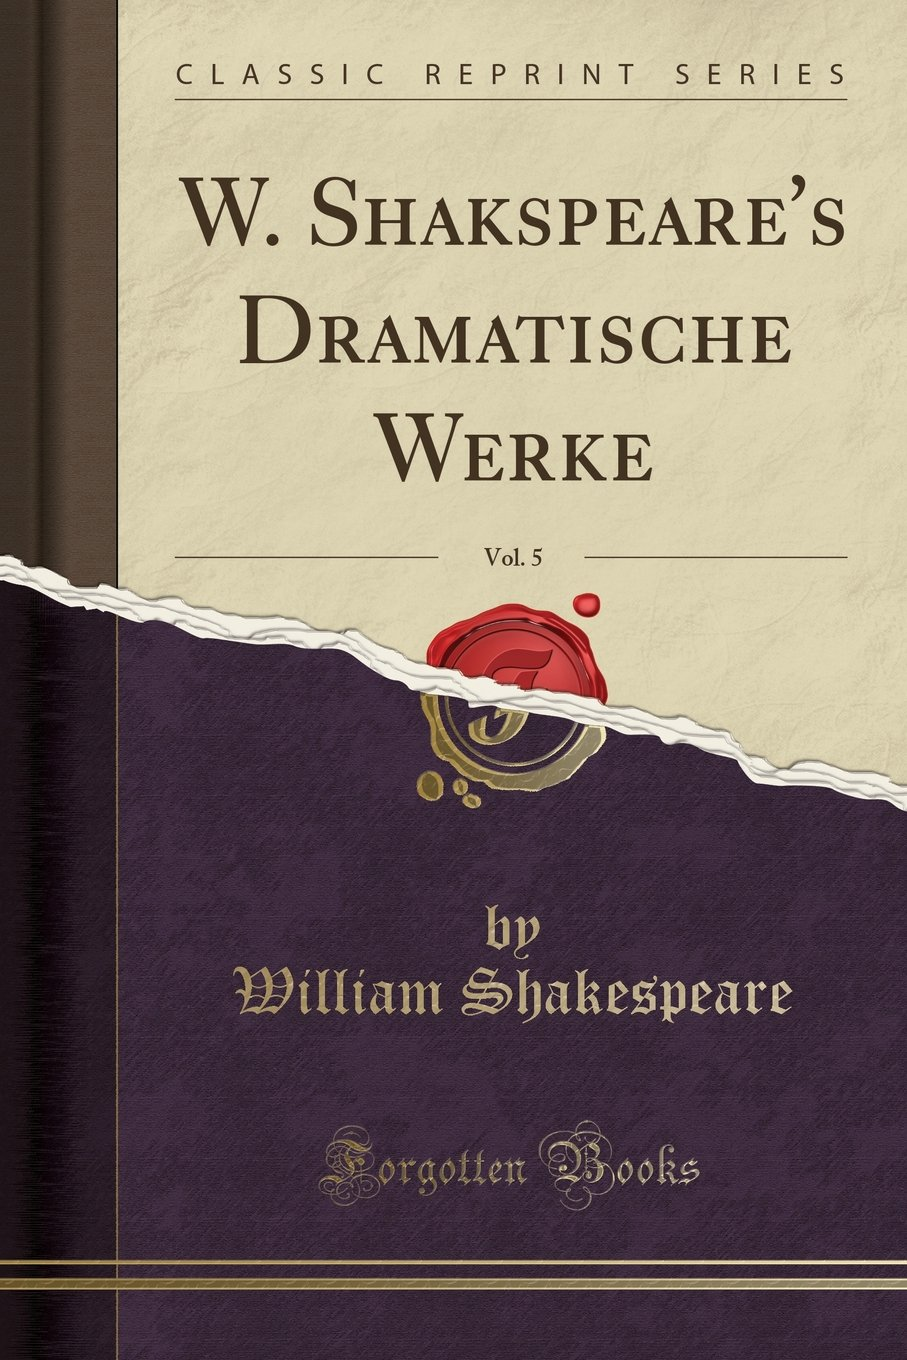 W. Shakspeare's Dramatische Werke, Vol. 5 (Classic Reprint) (German Edition) pdf